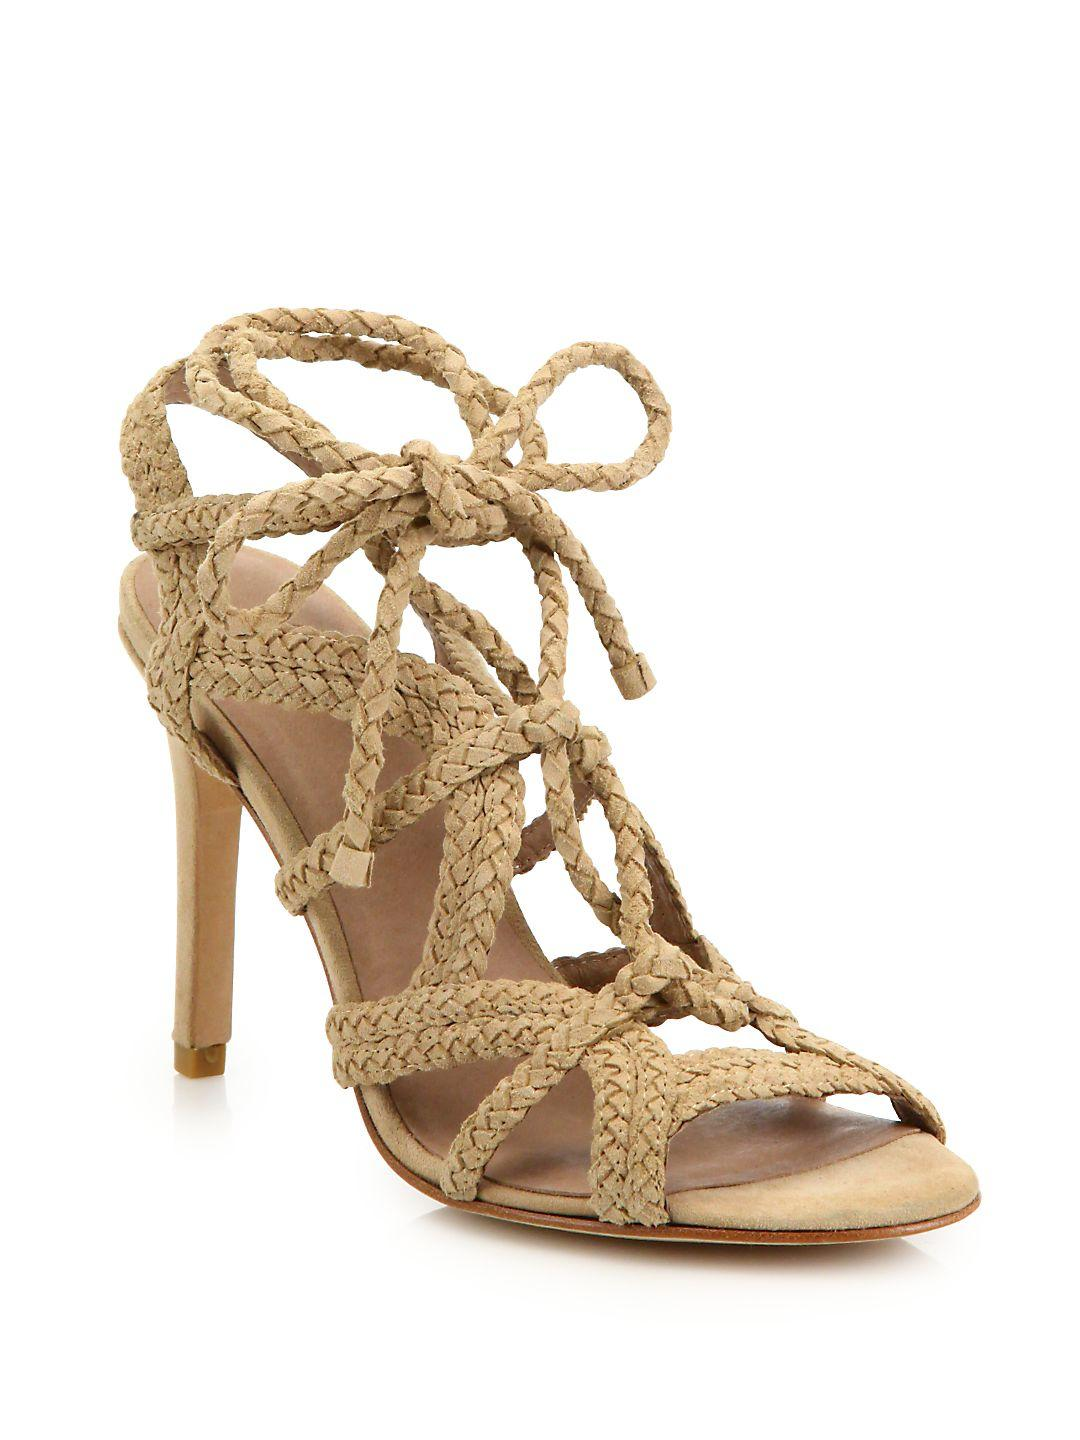 8c2d5b91630f Lyst - Joie Tonni Braided Suede Lace-up Sandals in Metallic